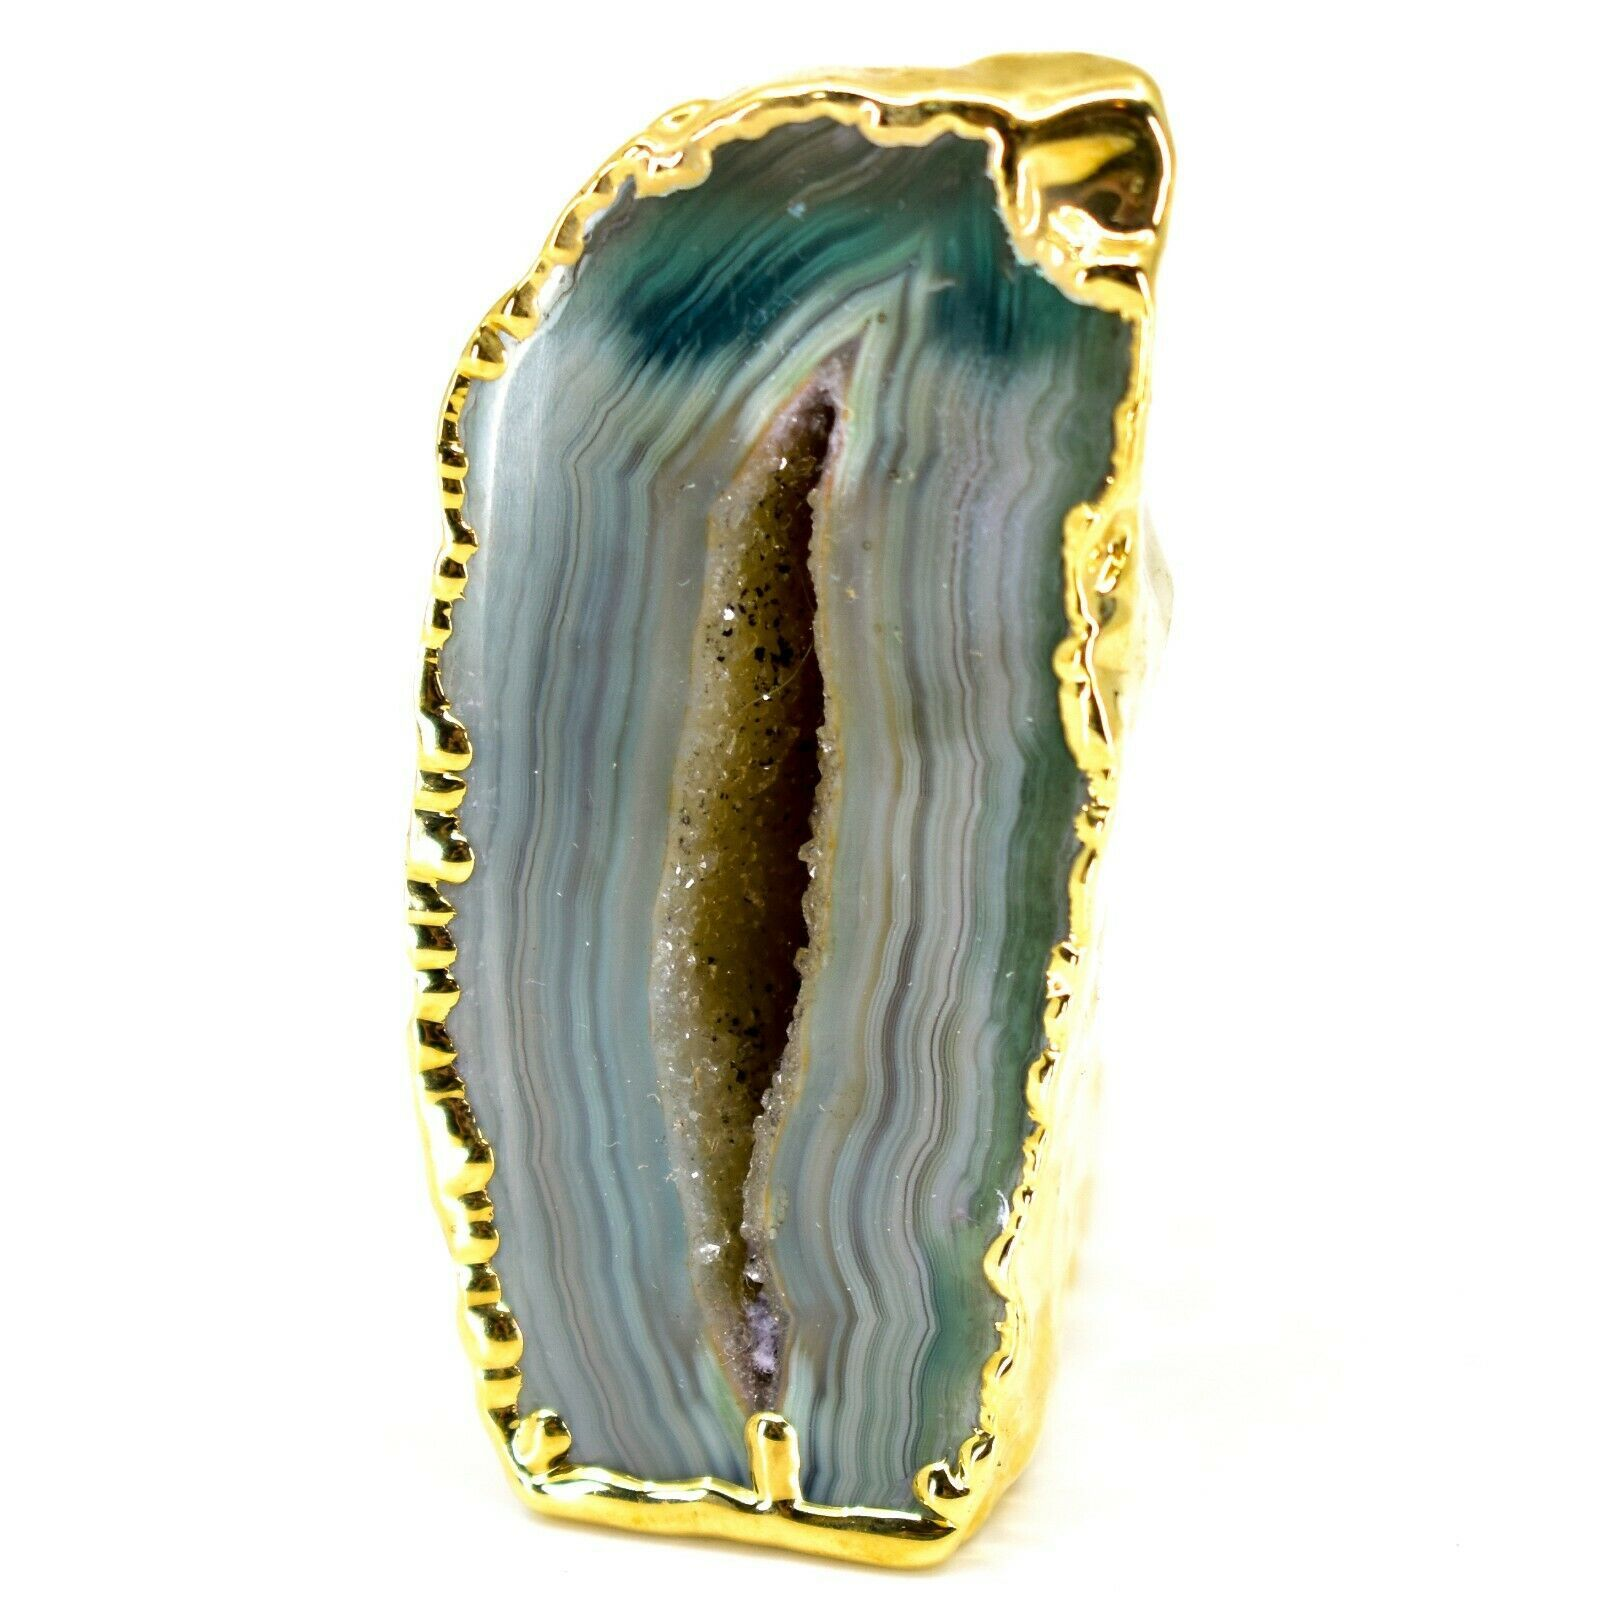 """Teal Blue Dyed Polished Agate Stone Gilded Gold 2"""" Paperweight Display Rock"""